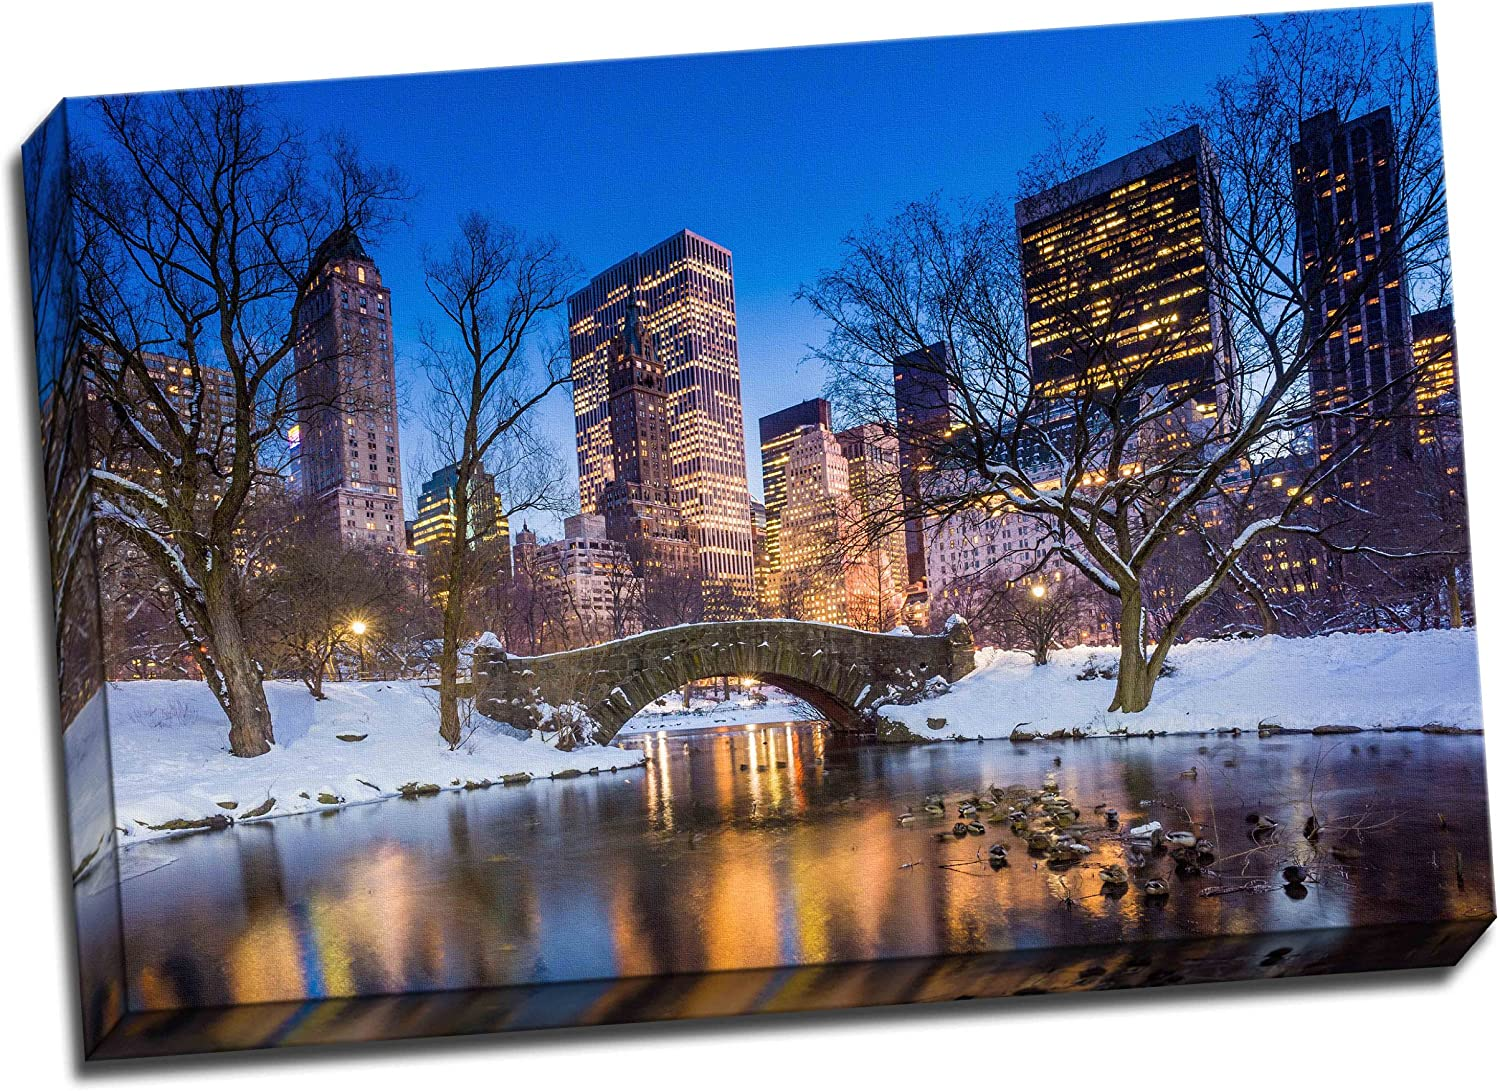 Gapstow Bridge In Winter Central Park Canvas Art Print Poster 30 X 20 Inches Amazon Co Uk Kitchen Home